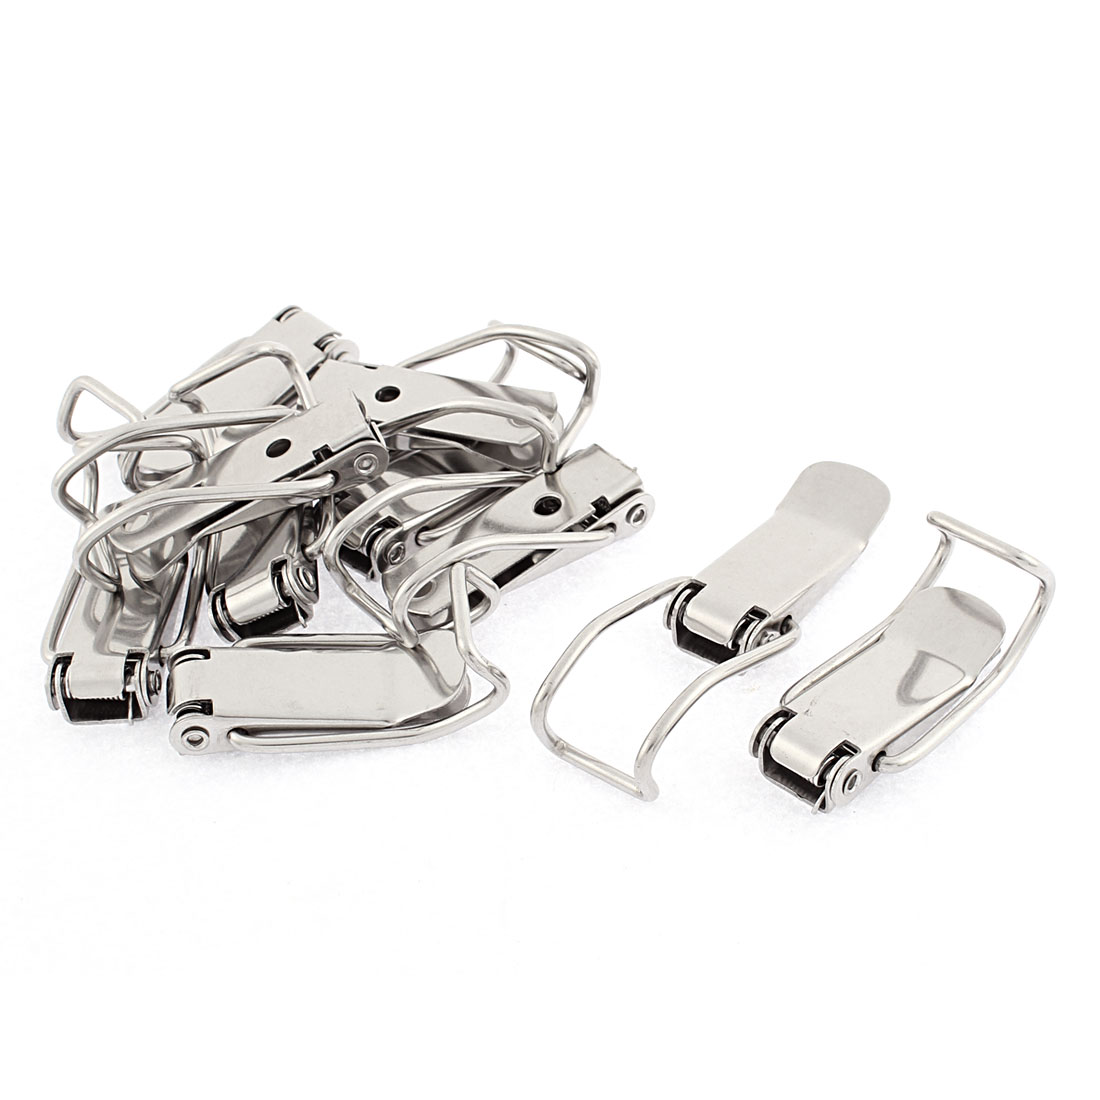 Cabinet Chests Silver Tone Spring Loaded Toggle Latch Hasp Hardware 10pcs